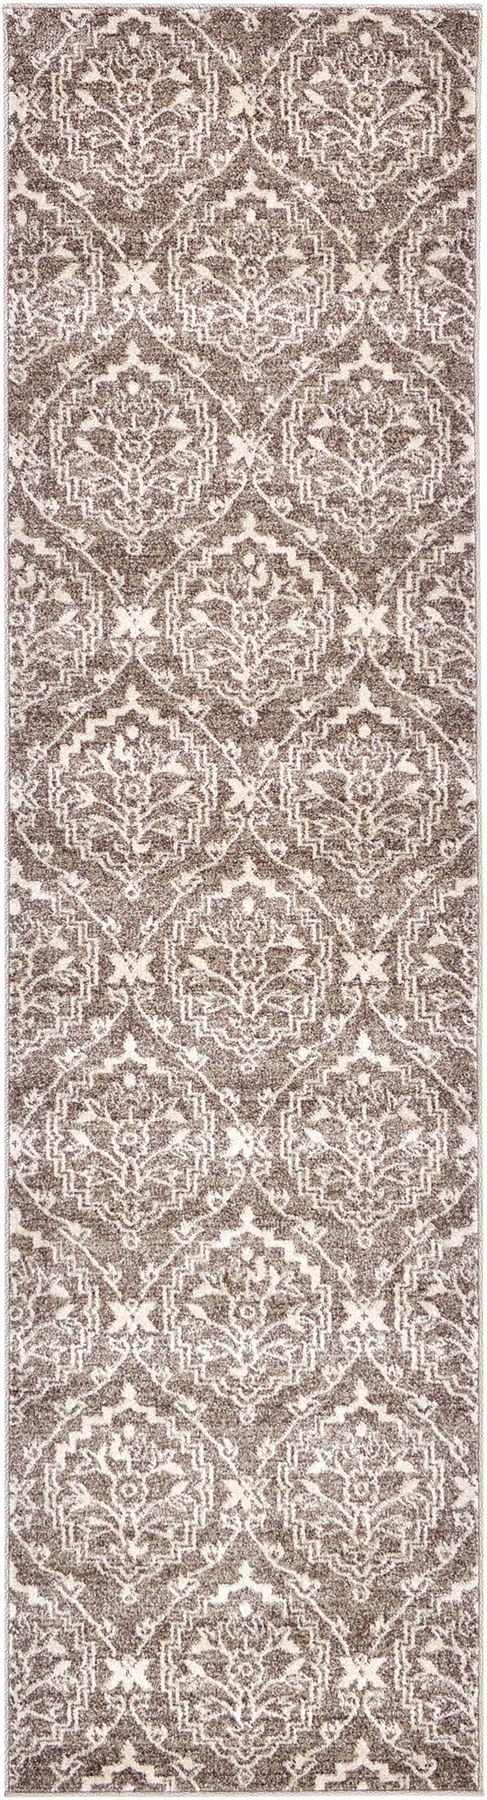 W Studio Contemporary Rugs Hand Woven Wool Rug From Luxury